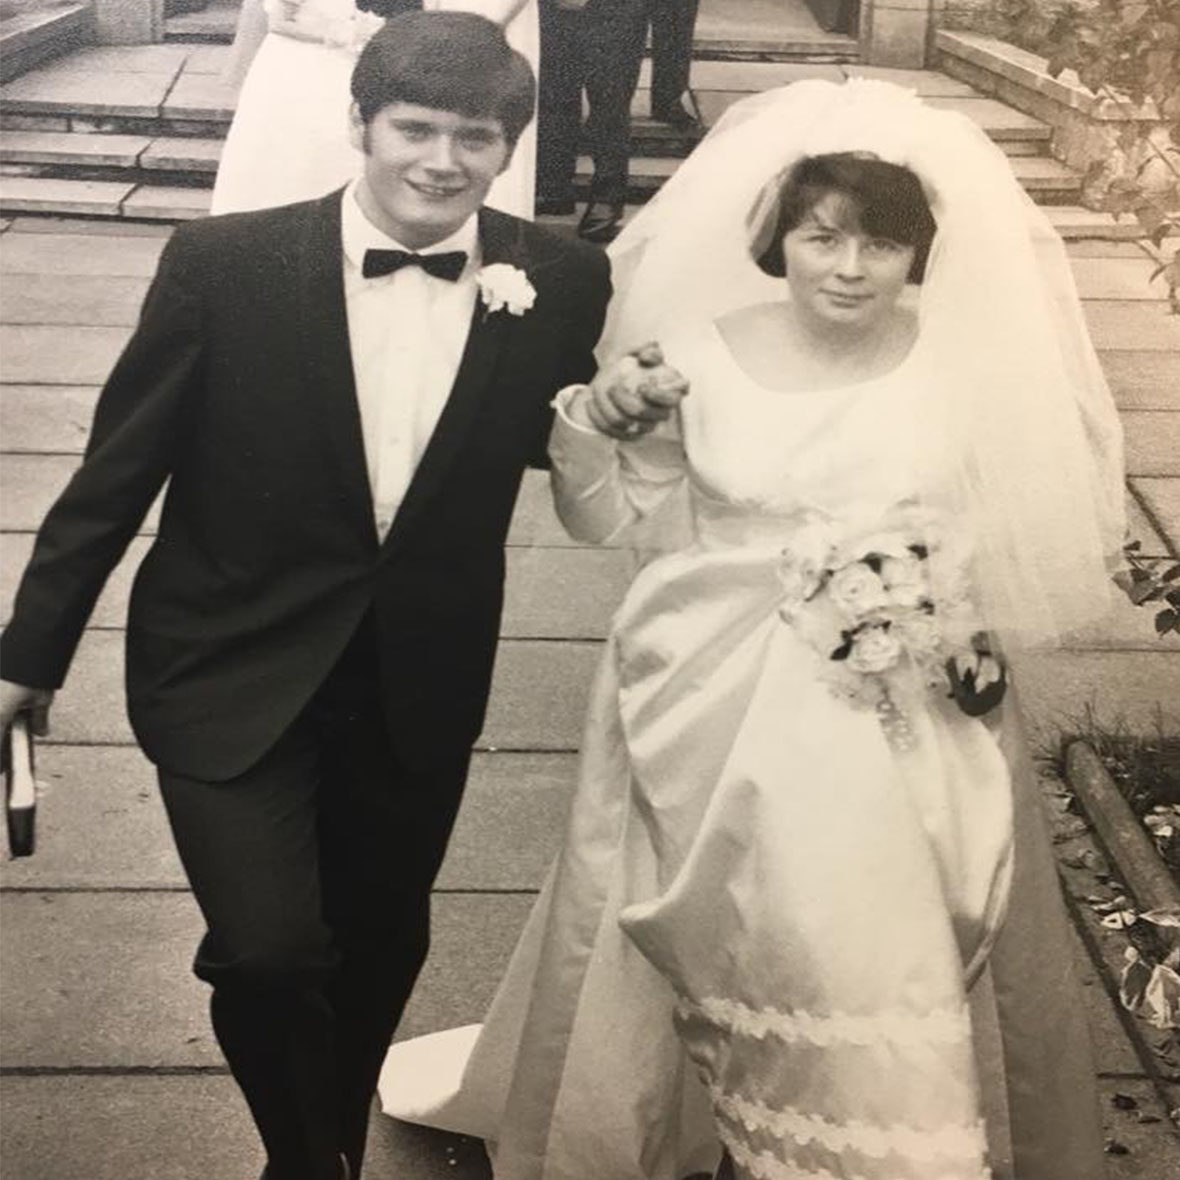 Black and white image of man in tuxedo and woman in wedding dress holding hands.